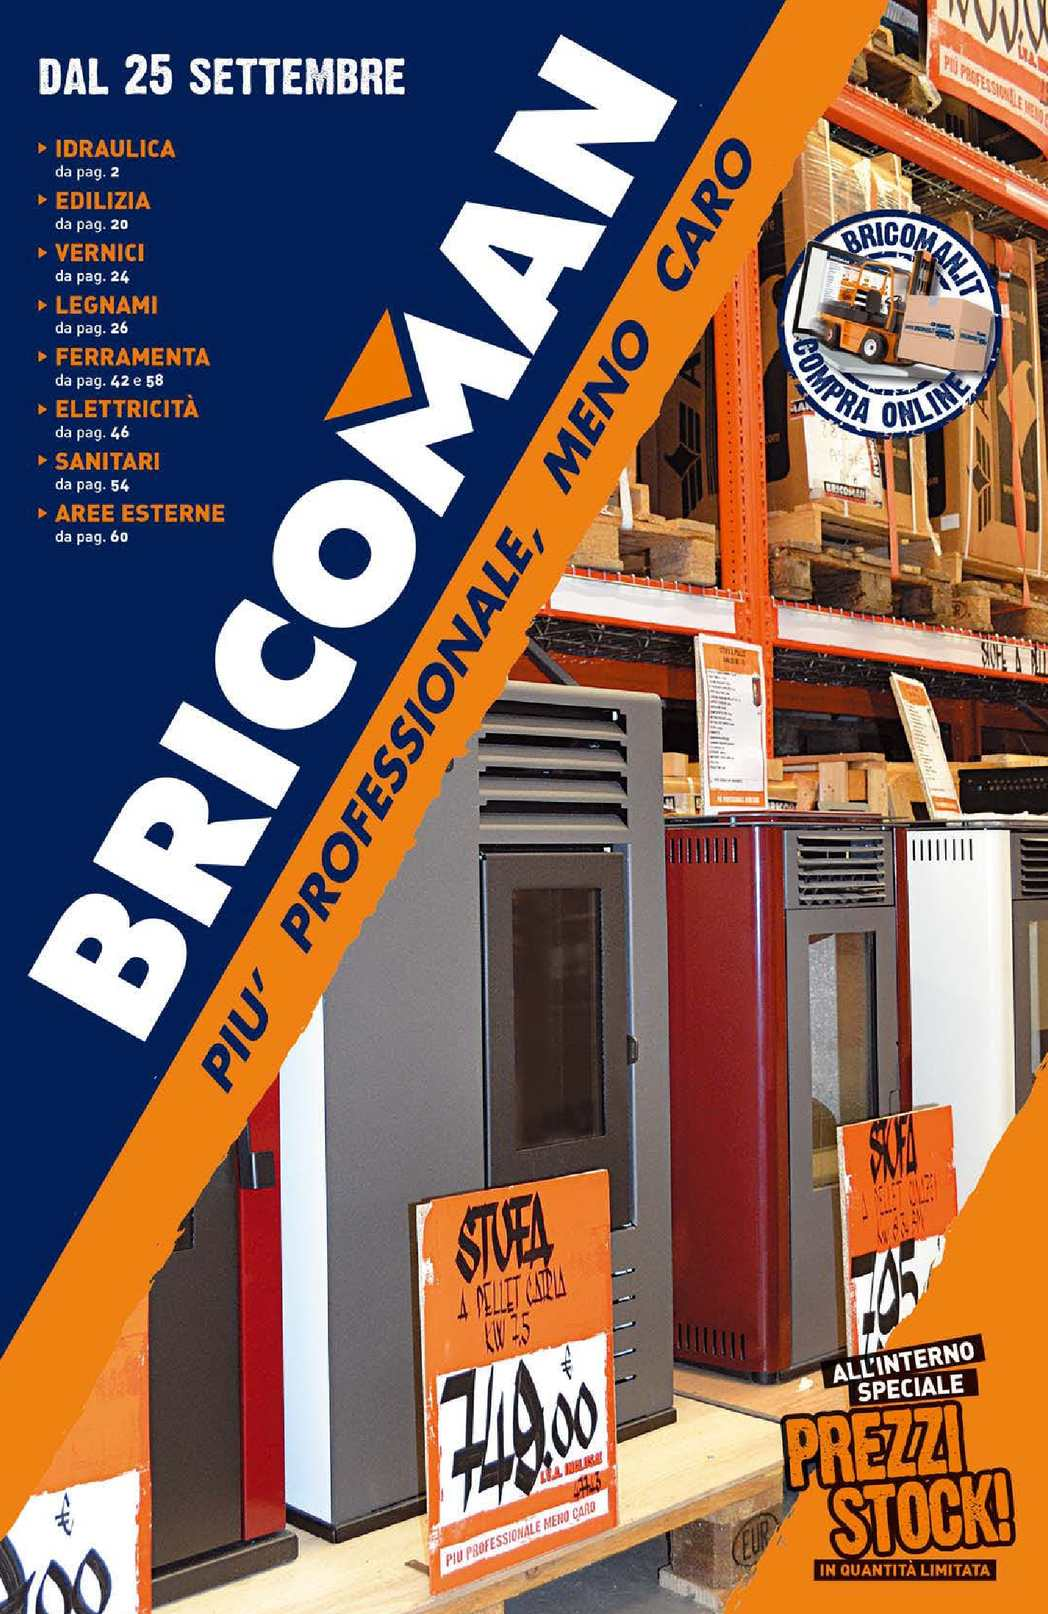 Calam o catalogo bricoman dal 25 settembre for Bricoman elmas catalogo 2017